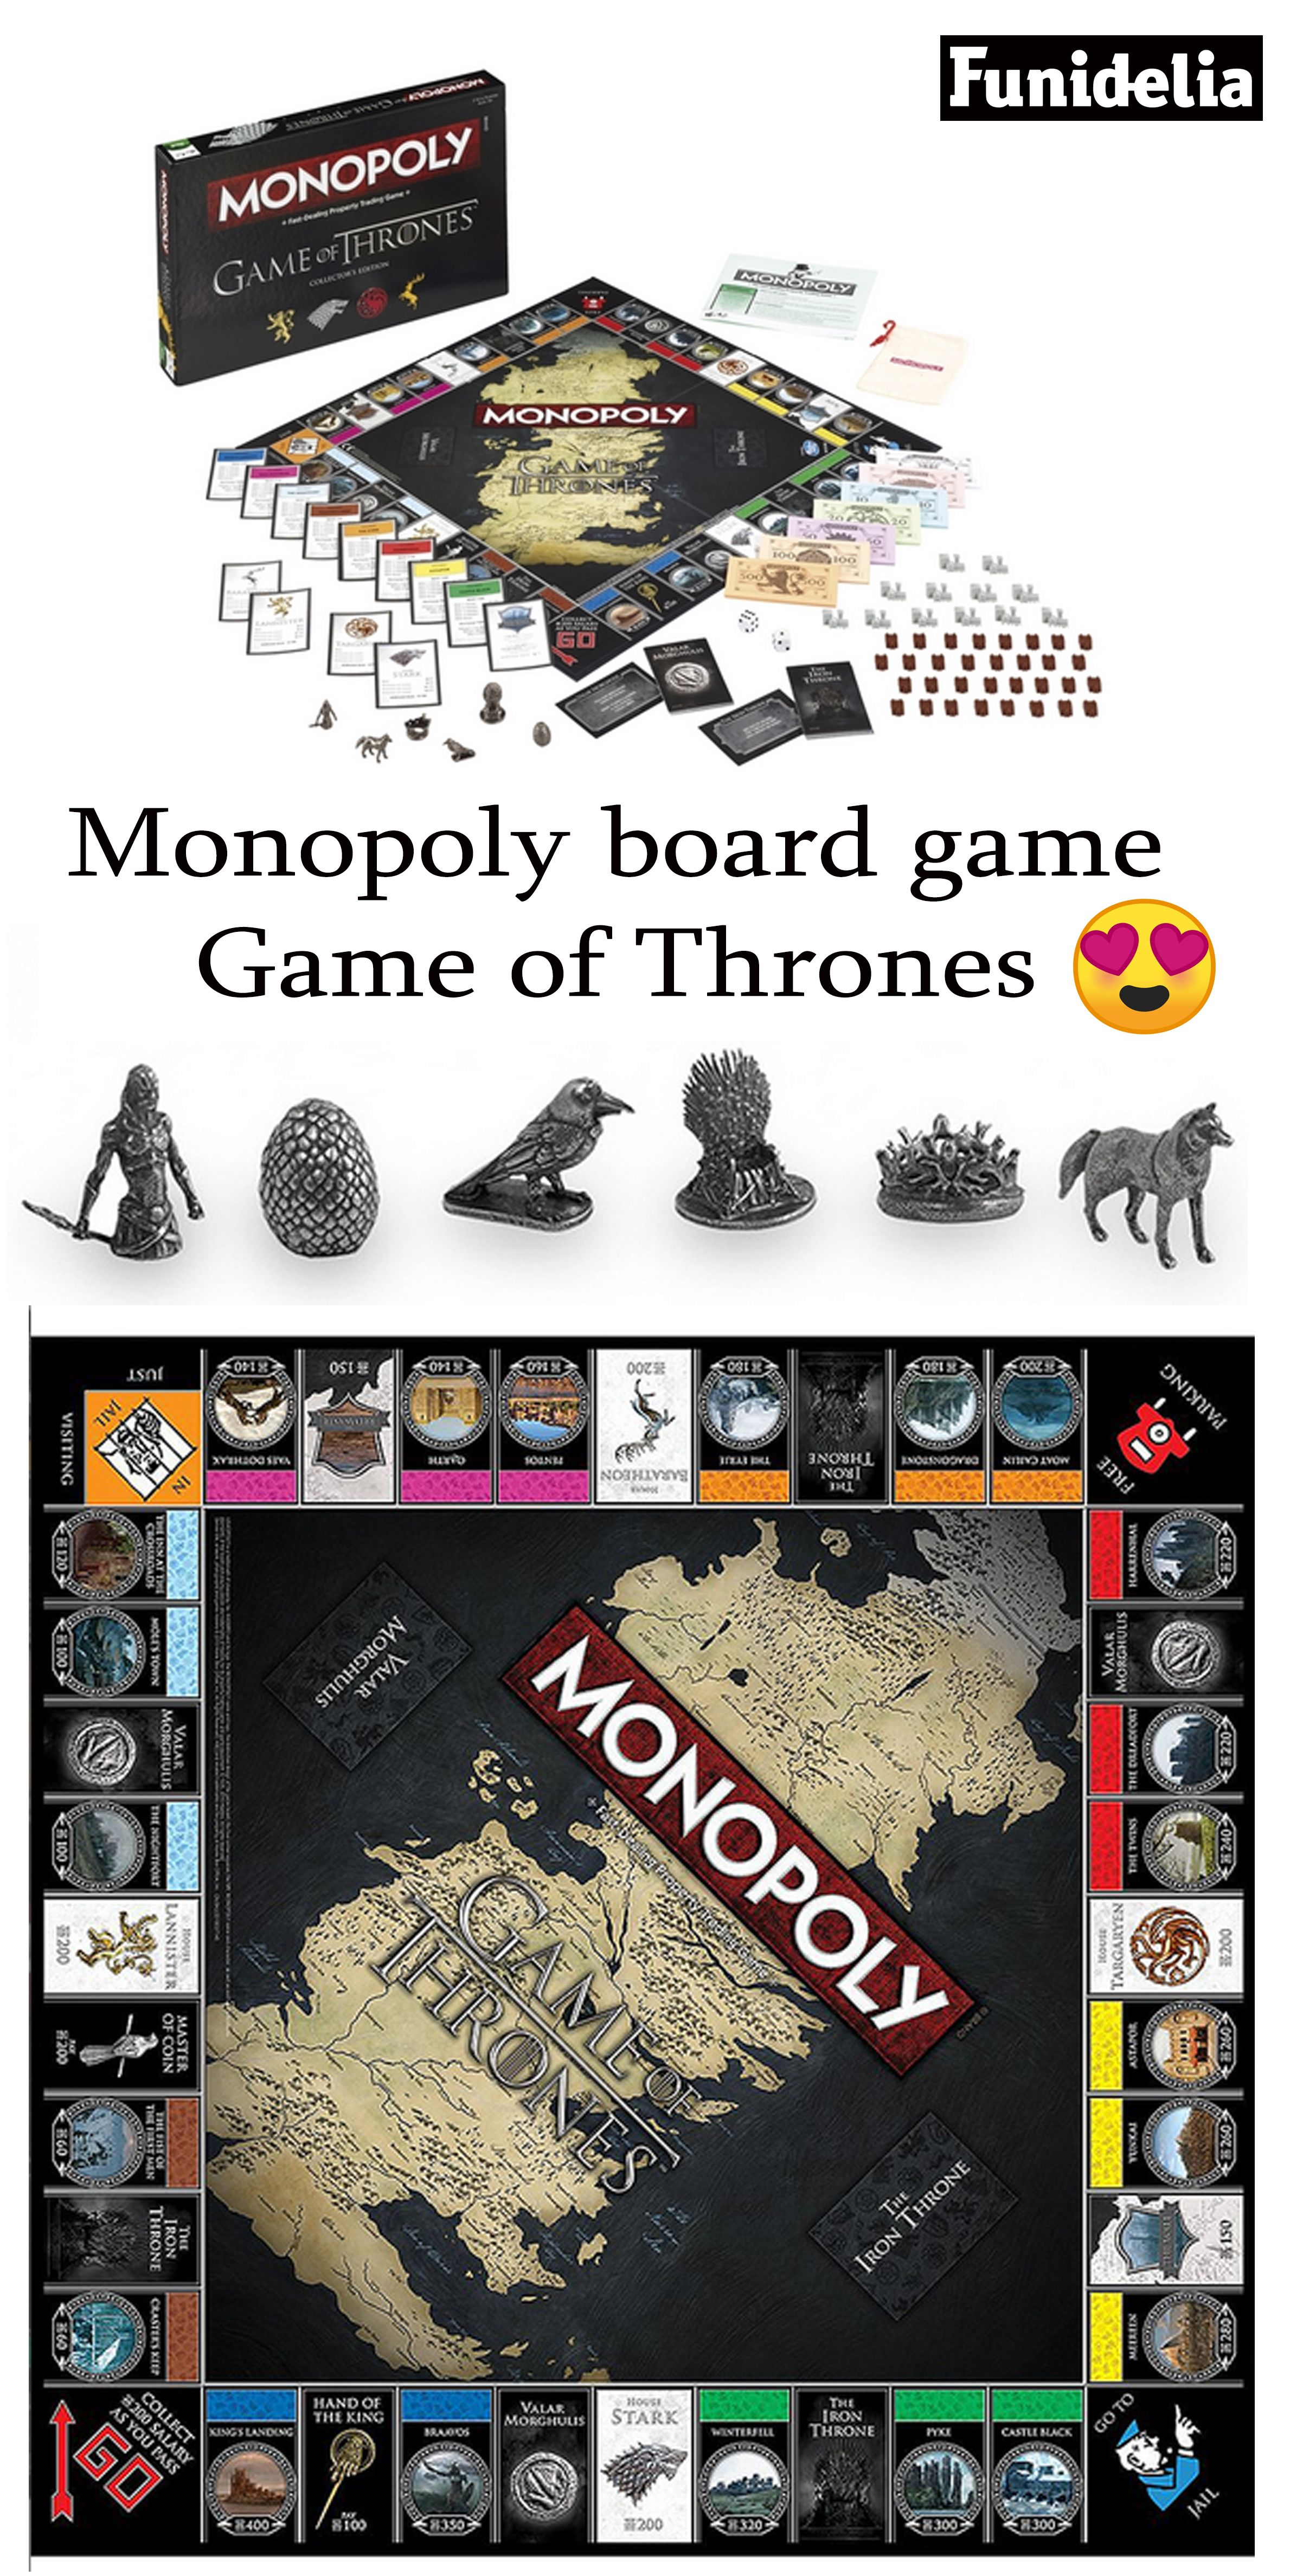 Monopoly Game Of Thrones Game Of Thrones Merchandise Game Of Thrones Gifts Game Of Thrones Illustrations